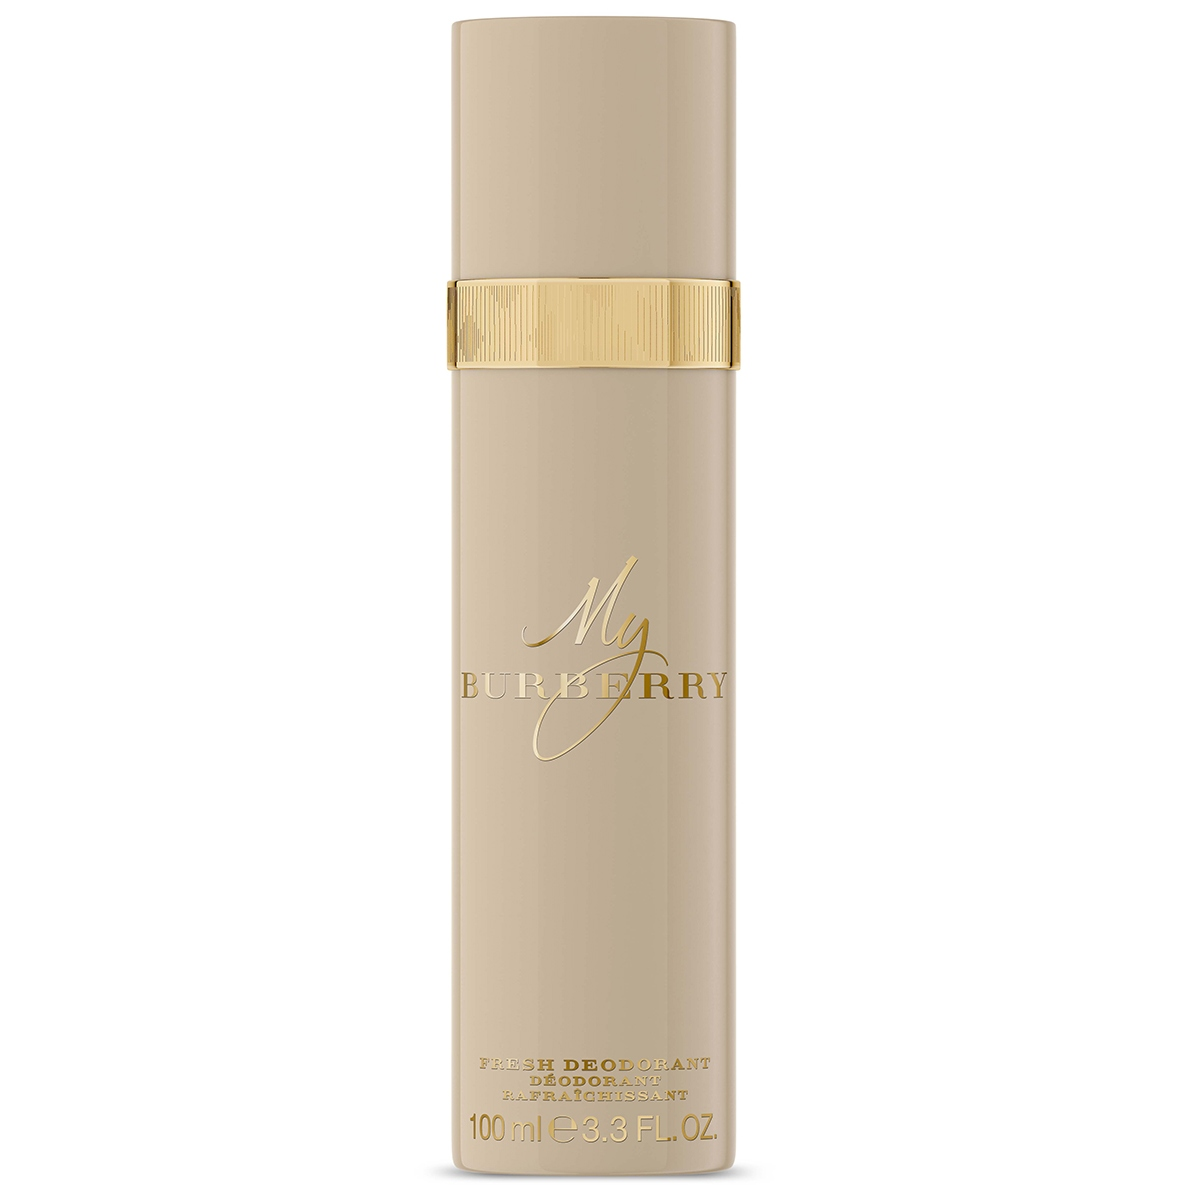 My Burberry deodorante donna spray 100 ml